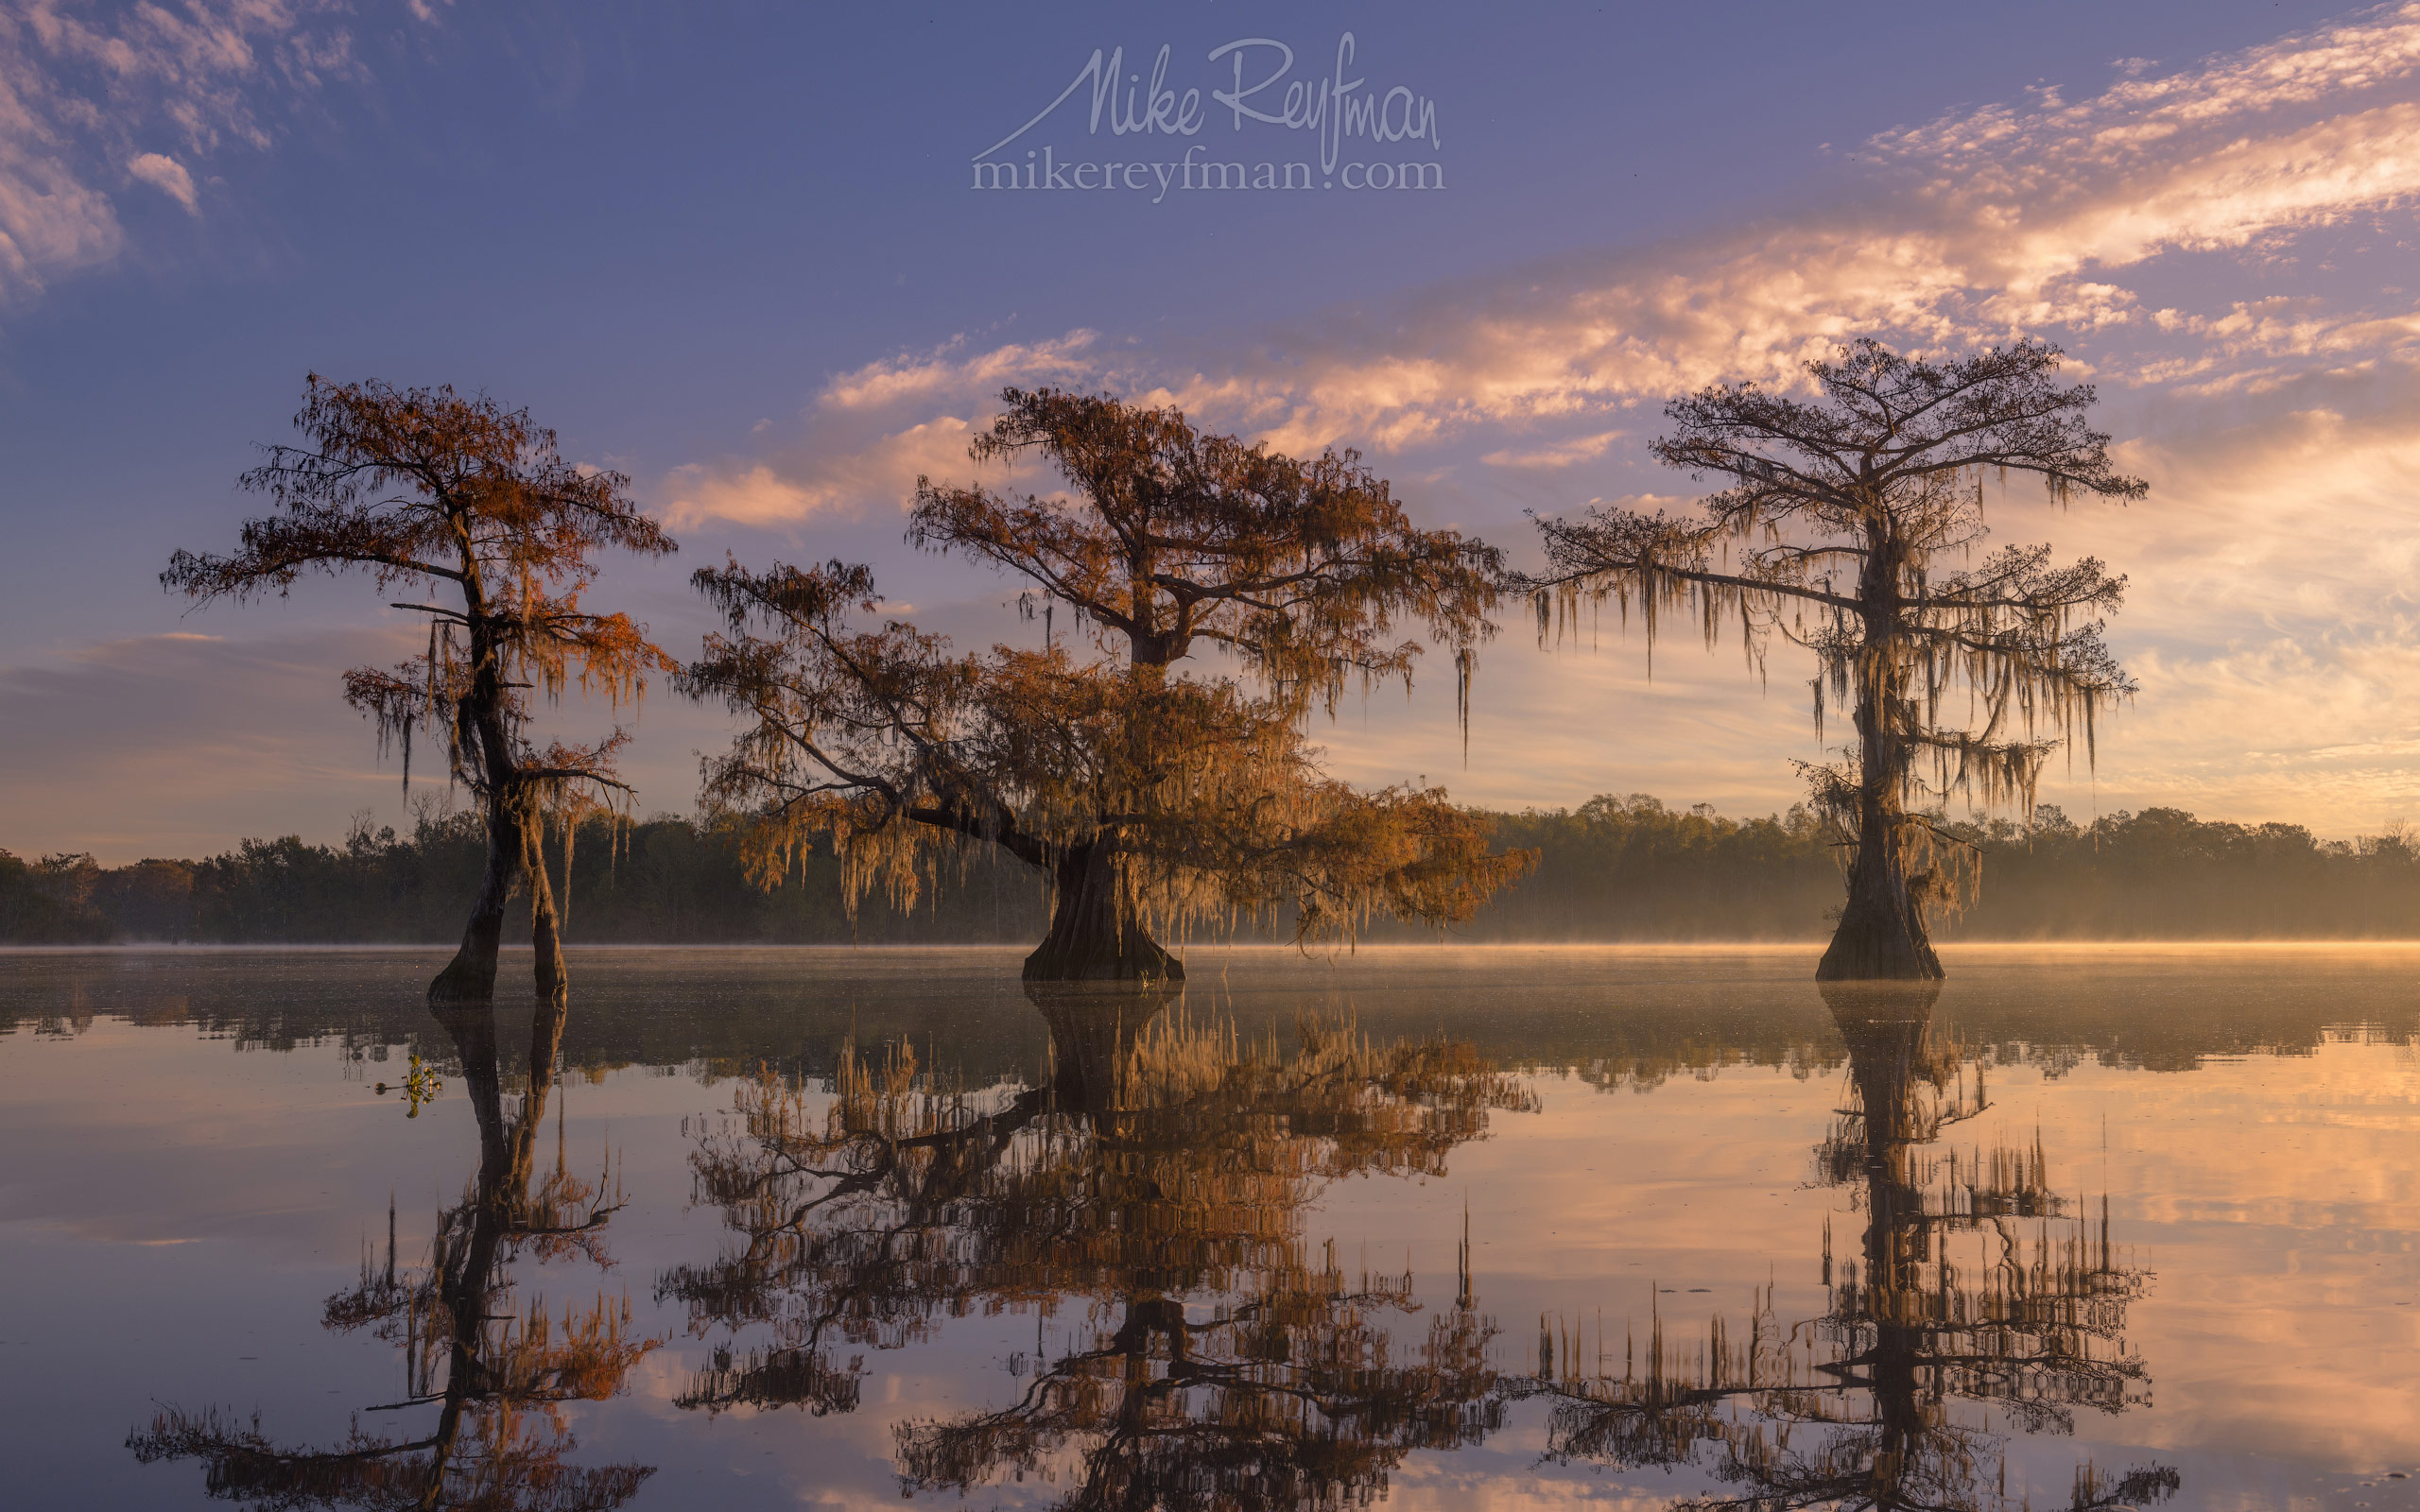 Bald Cypress trees covered in Spanish Moss at sunrise. Lake Fausse, Louisiana, US 080-LT1-50A4416.jpg - Bold Cypress and Tupelo Trees in the swamps of Atchafalaya River Basin. Caddo, Martin and Fousse Lakes. Texas/Louisiana, USA. - Mike Reyfman Photography